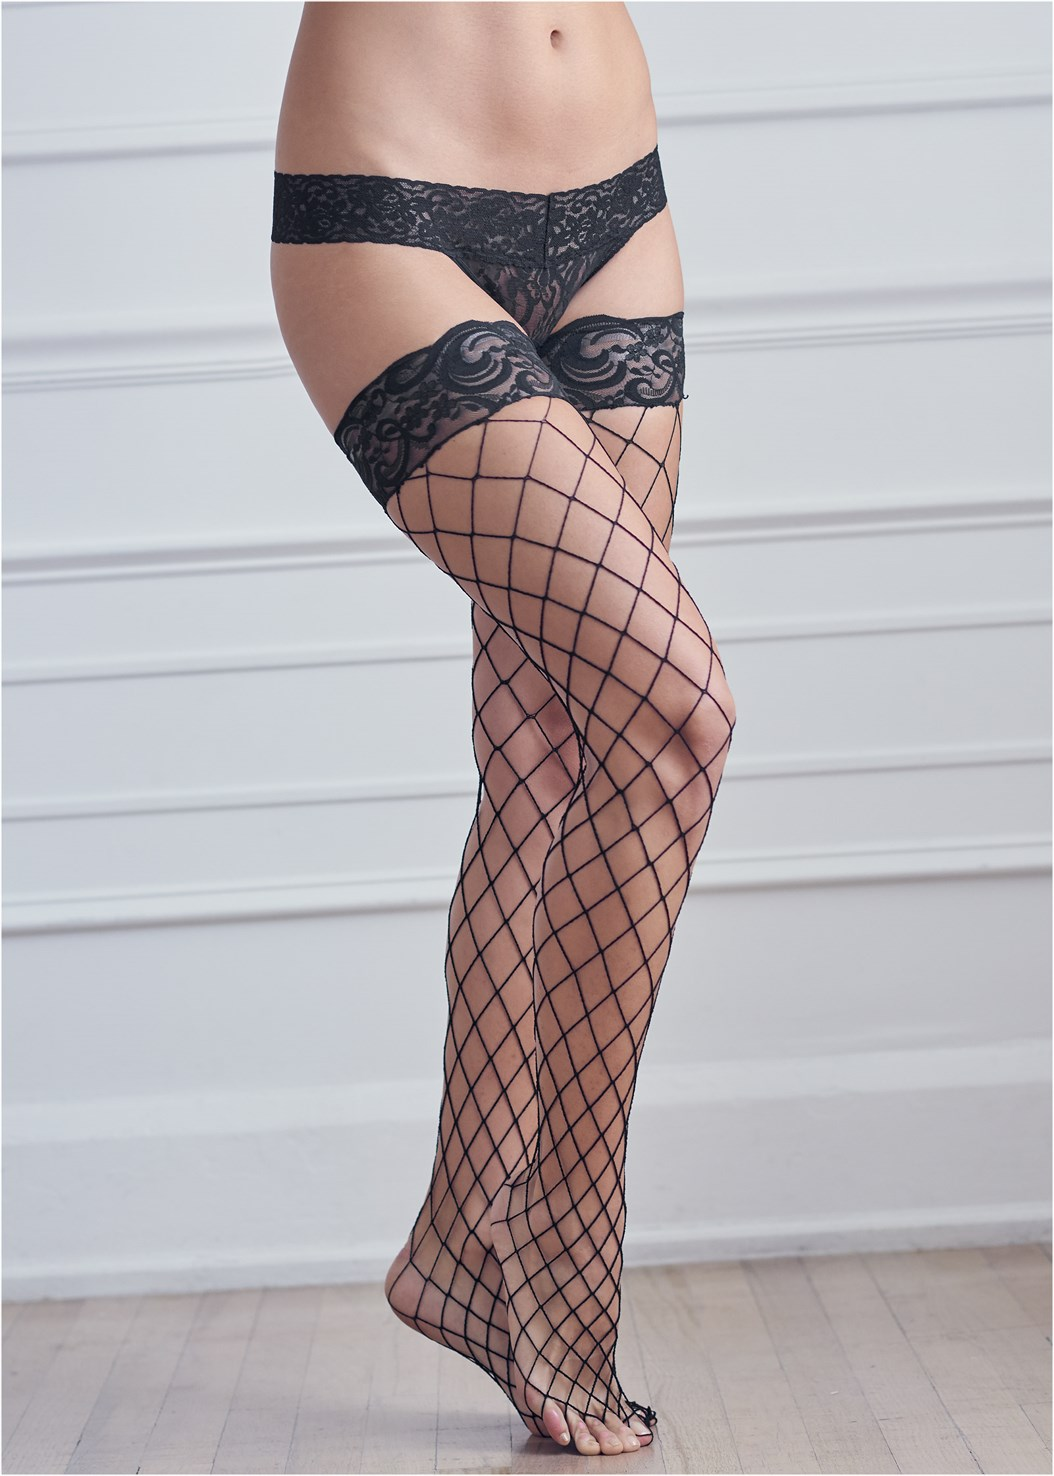 Fishnet Thigh Highs,Lace Thong 3 For $19